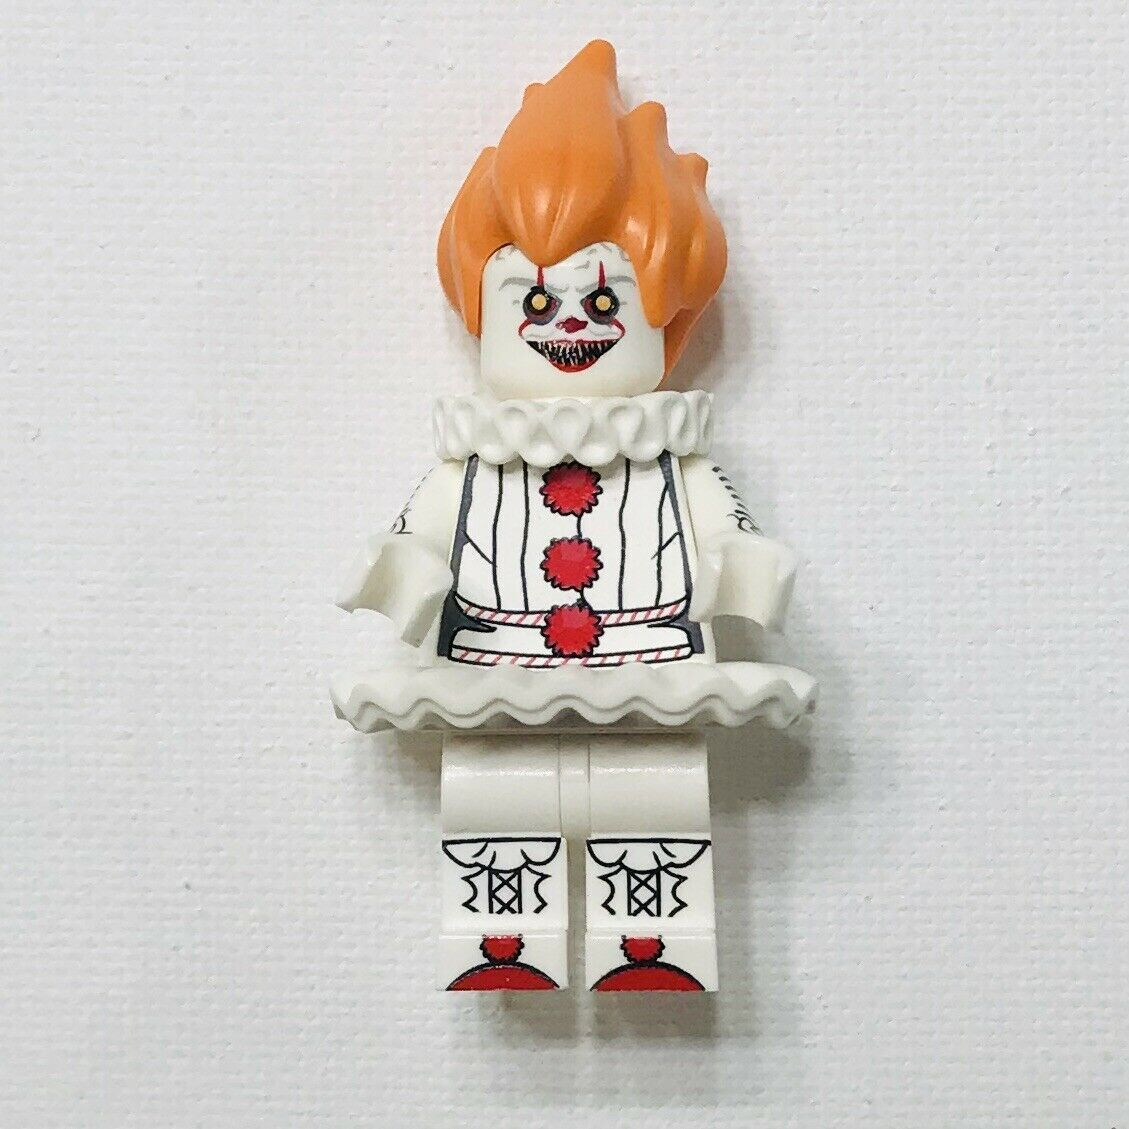 The Clown Pennywise With Two Balloon Figure For Custom Lego Minifigures